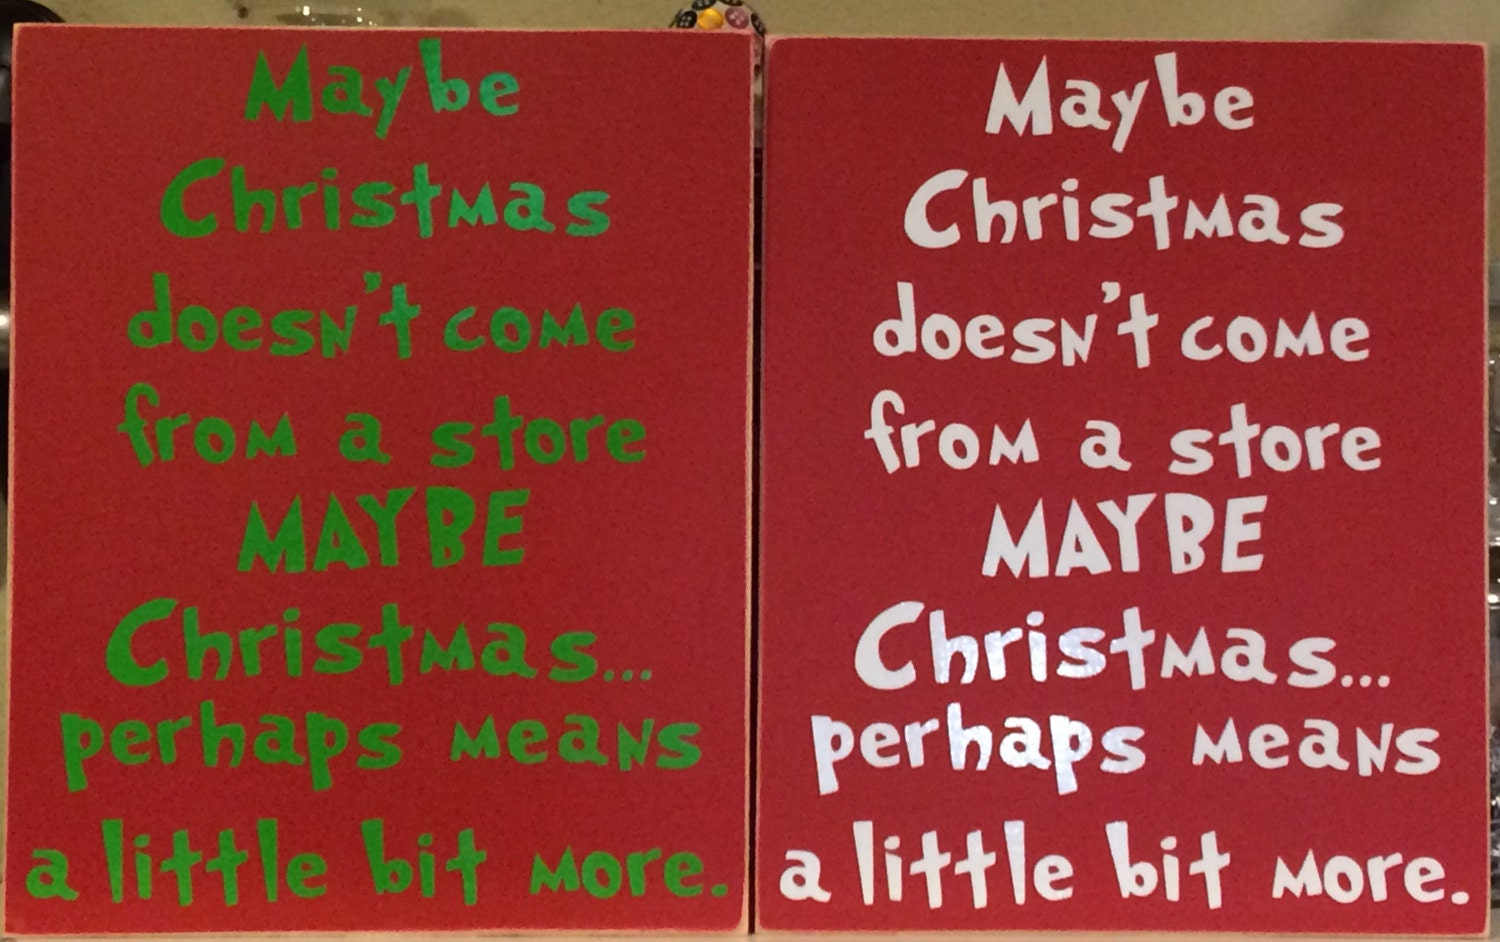 Maybe Christmas Doesn't Come From A Store By BeingACreativeMom